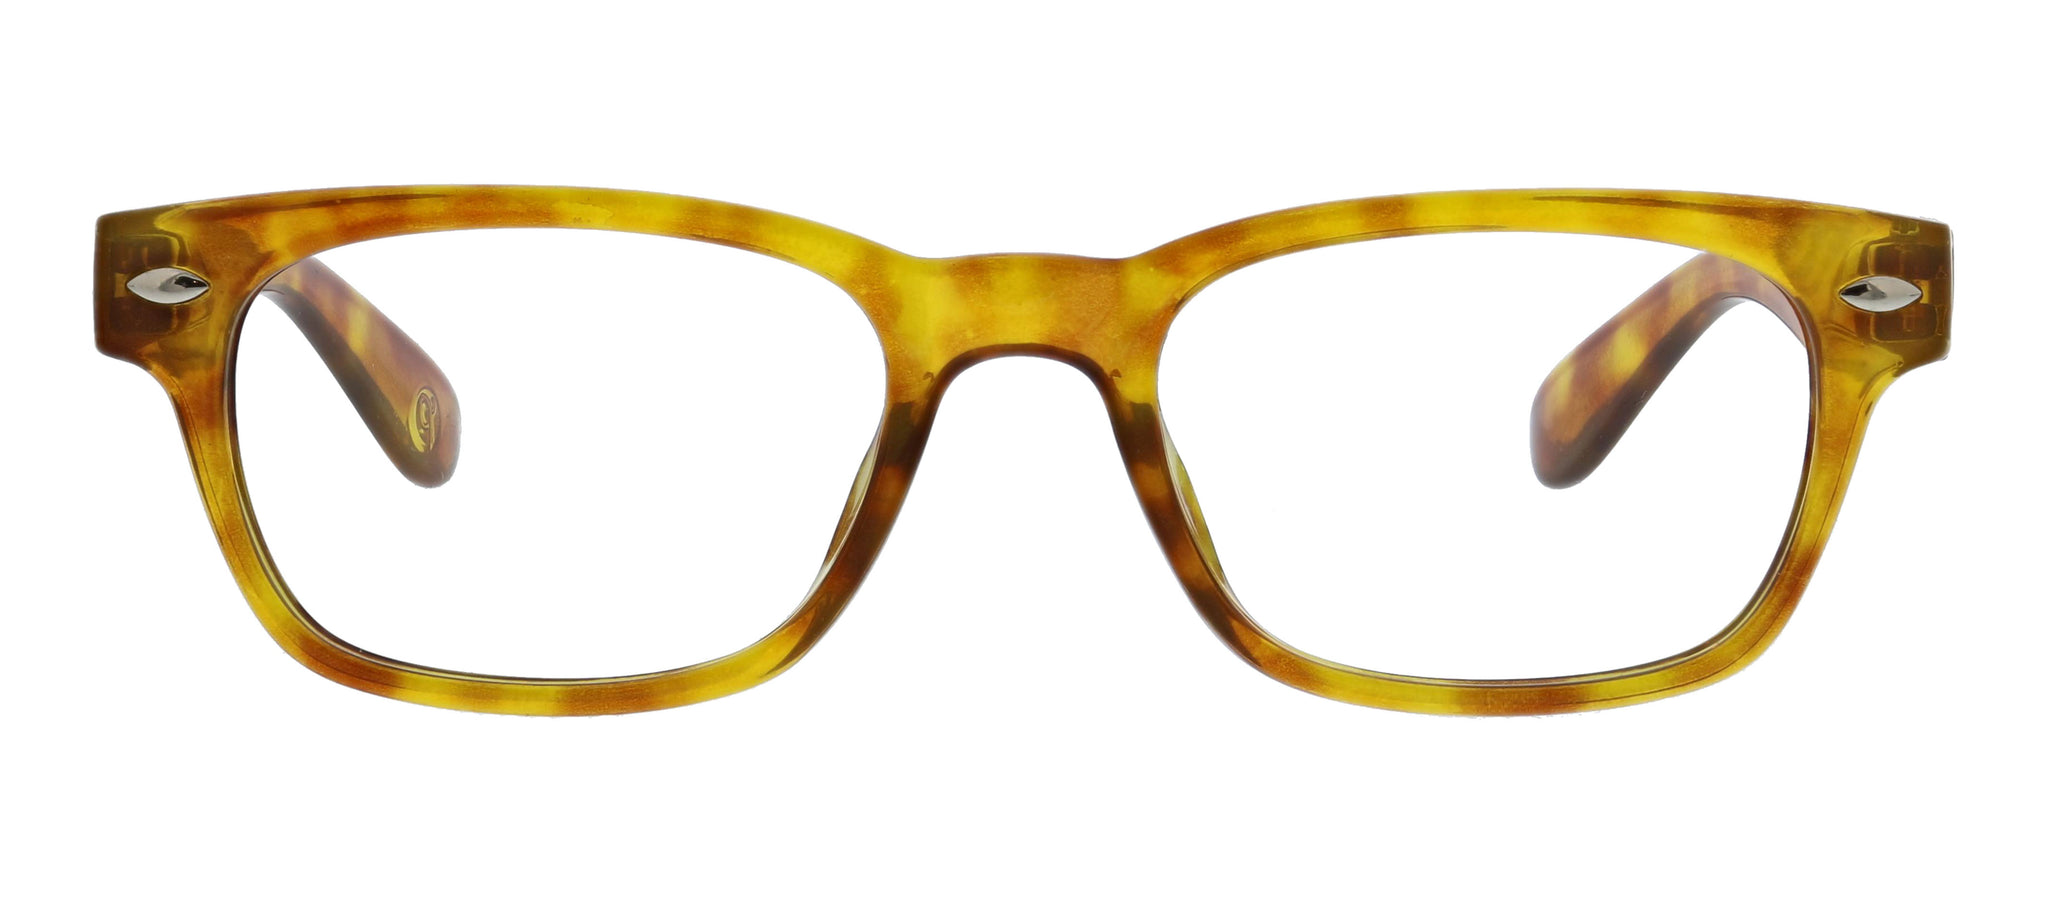 Clark Peepers blue light reading glasses